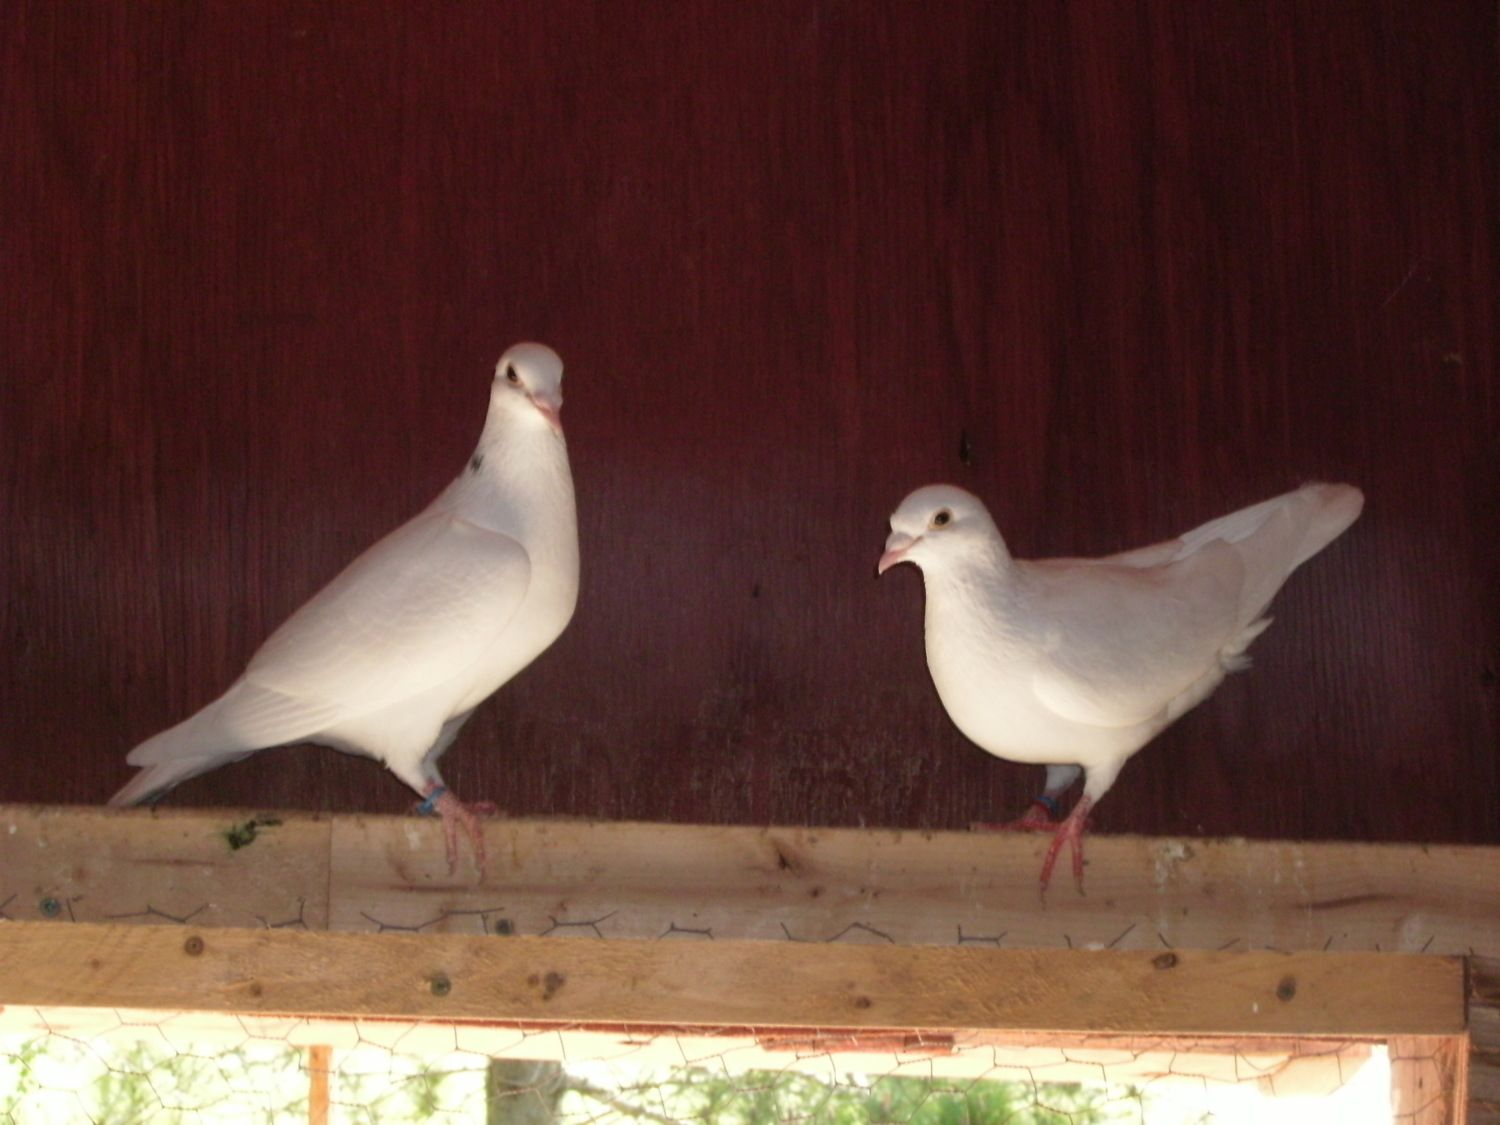 White homing pigeons are muscular athletes able to fly hundreds of miles to find home. My blood line originate from Belgium and I would want $150.% each for a banded young bird.